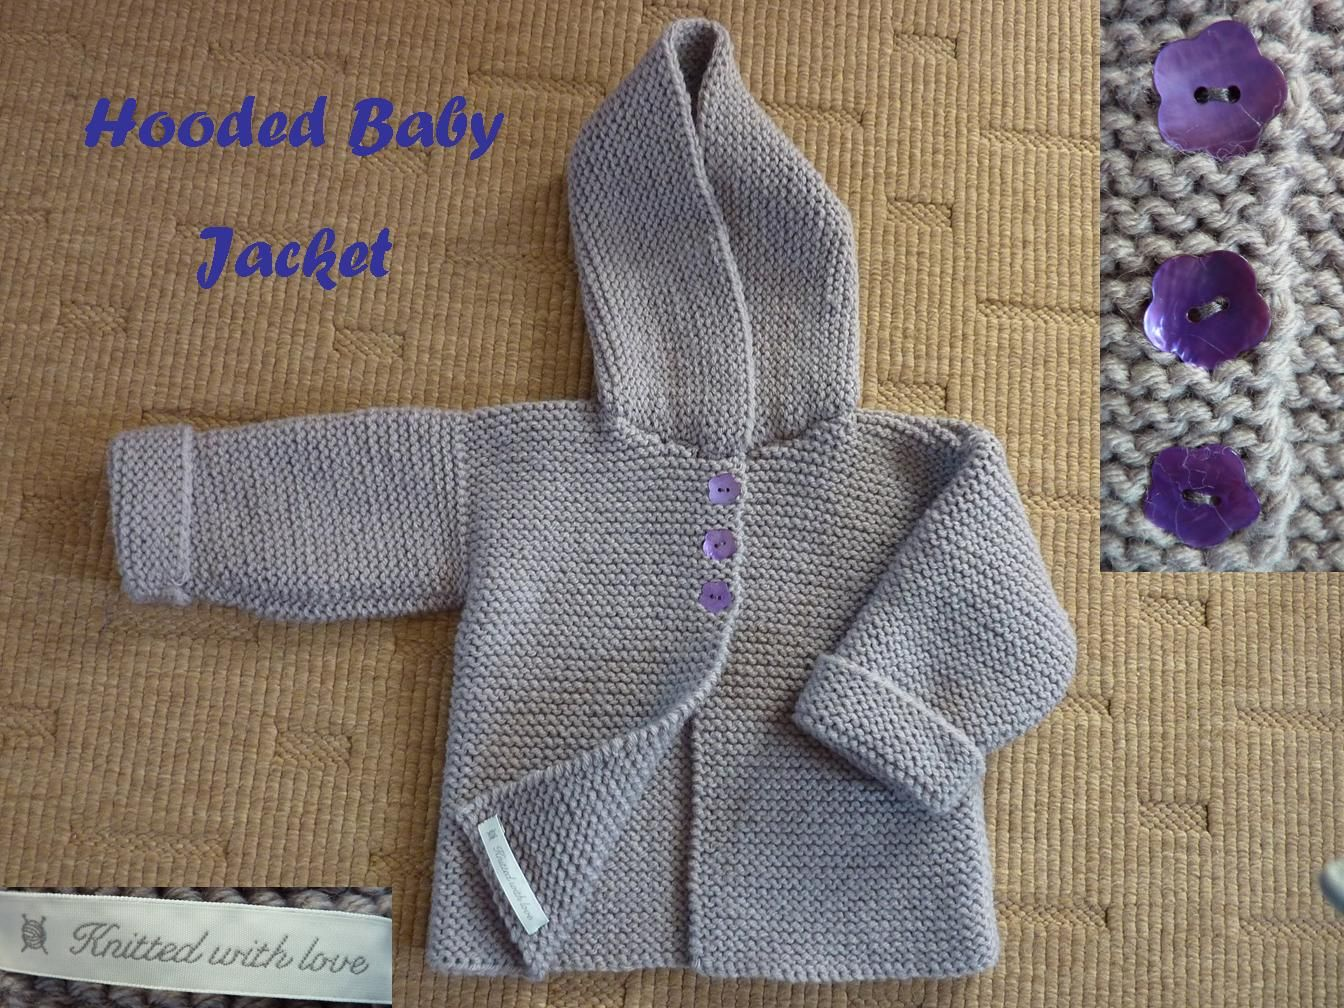 Baby sweater patterns ribbed baby jacket free pattern on ravelry baby sweater patterns ribbed baby jacket free pattern on ravelry dt1010fo